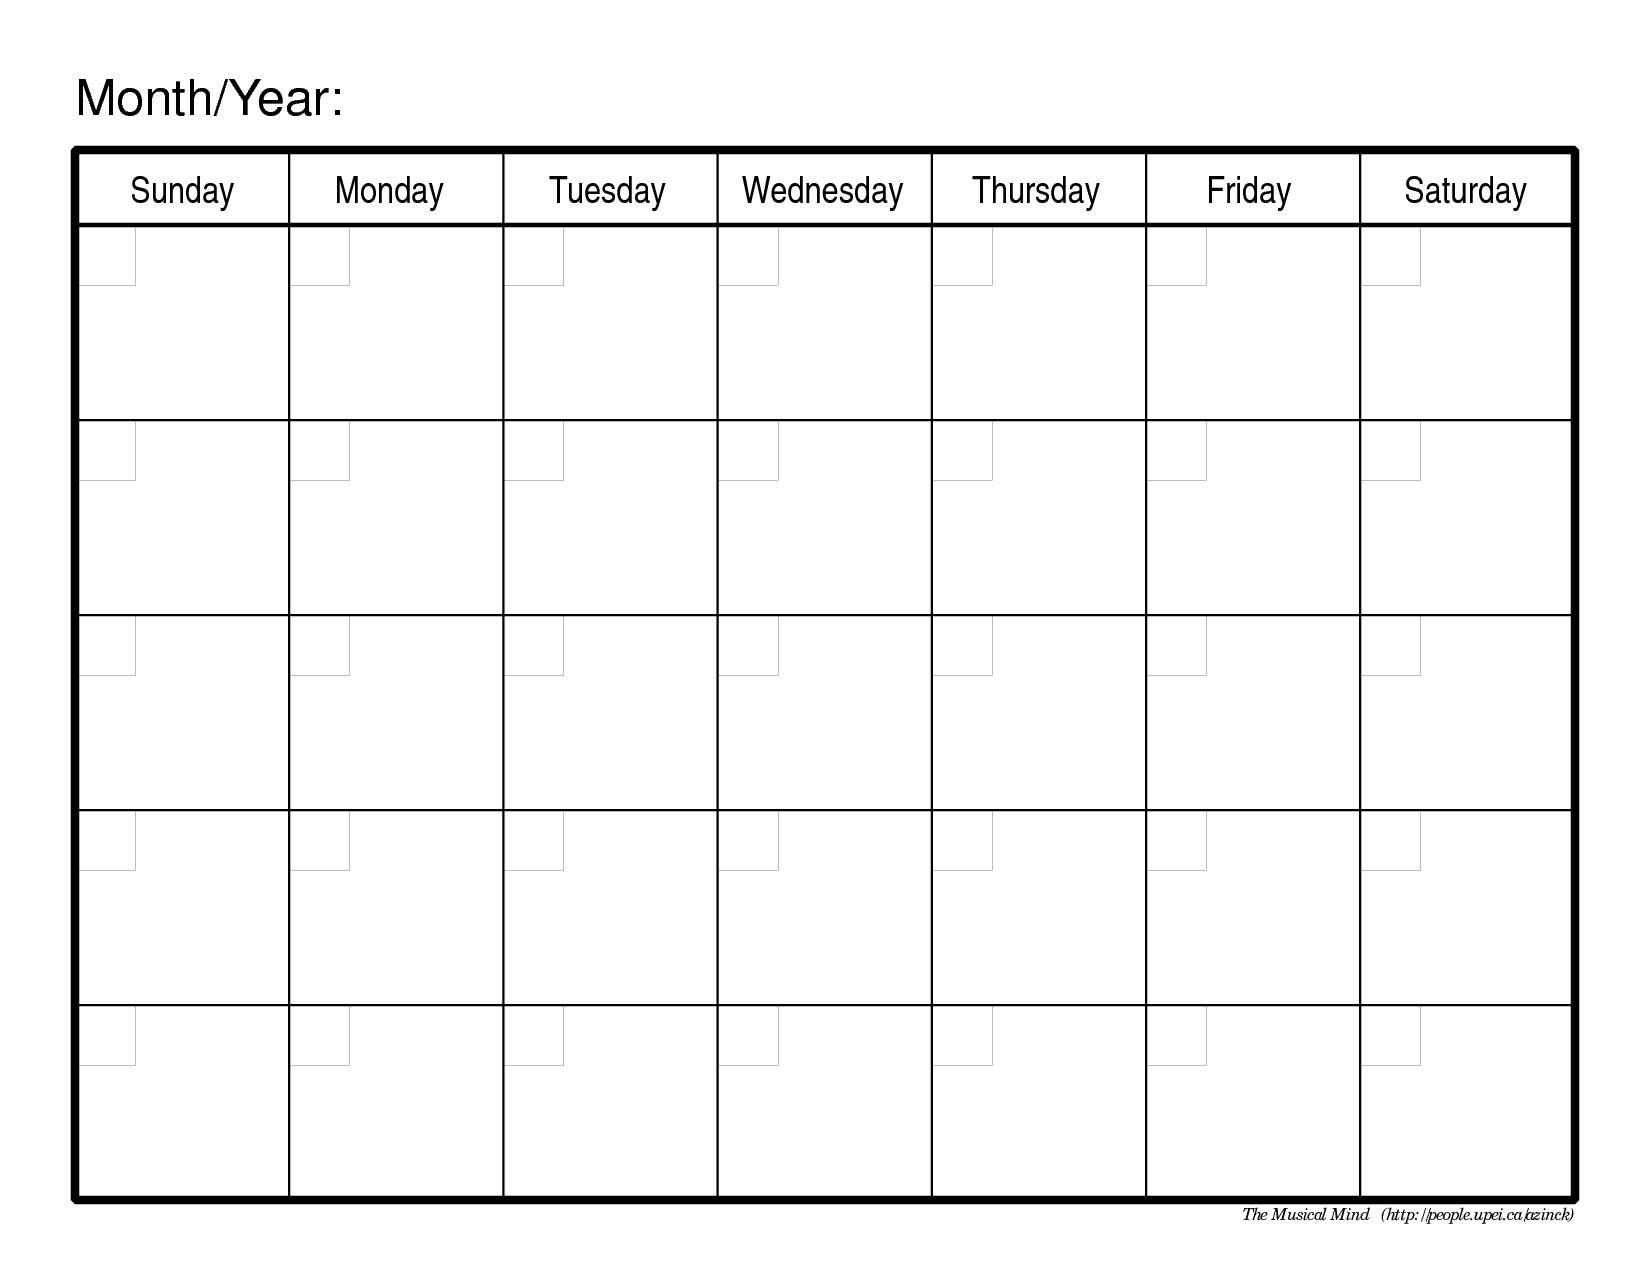 print-monthly-calendar-printable-monthly-calendars.jpg